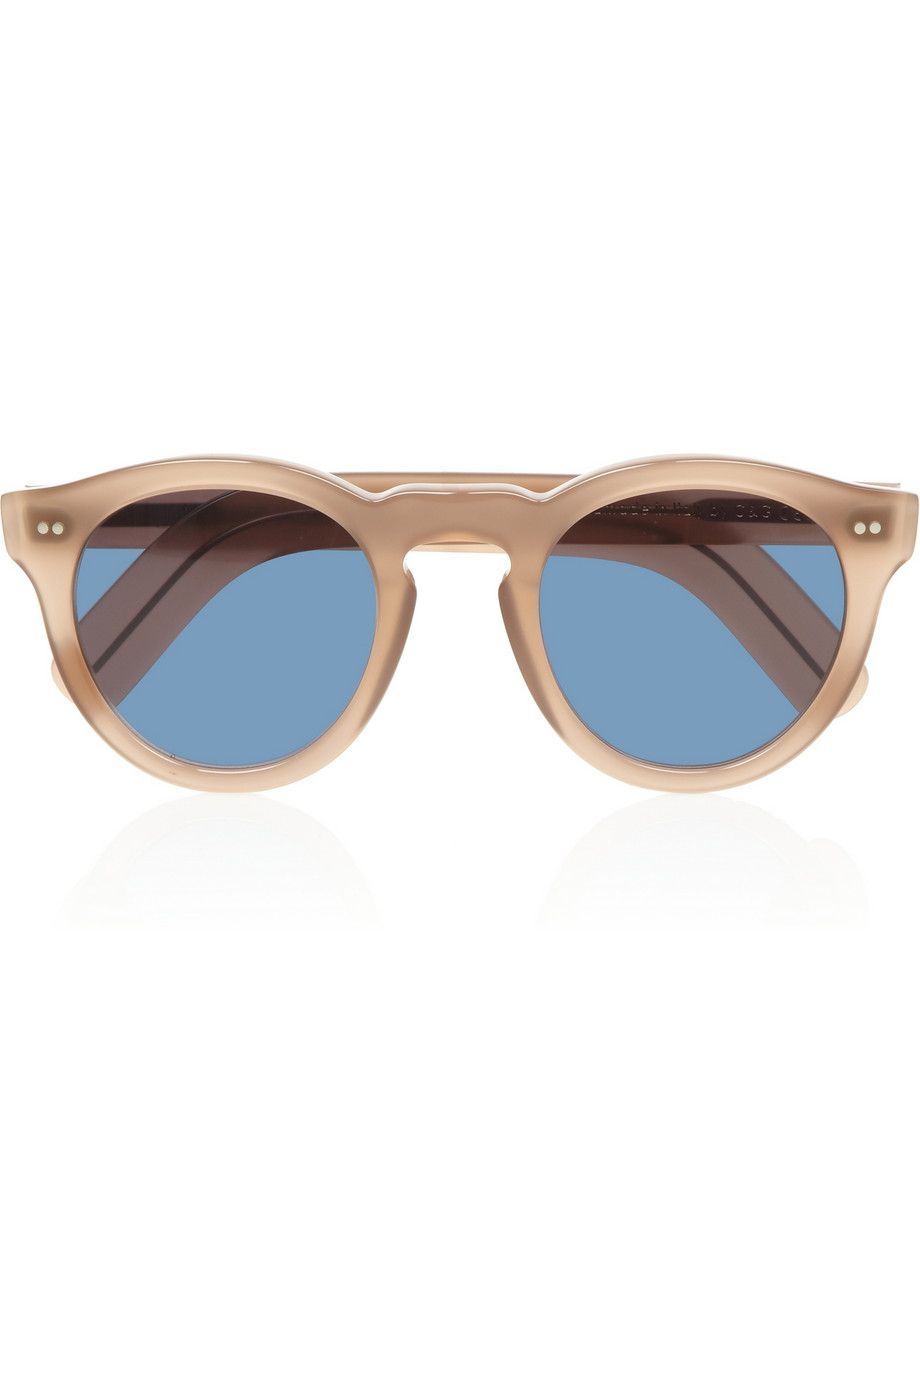 Le Meilleur Cutler And Gross Round Frame Acetate And Metal Ce Mois Ci